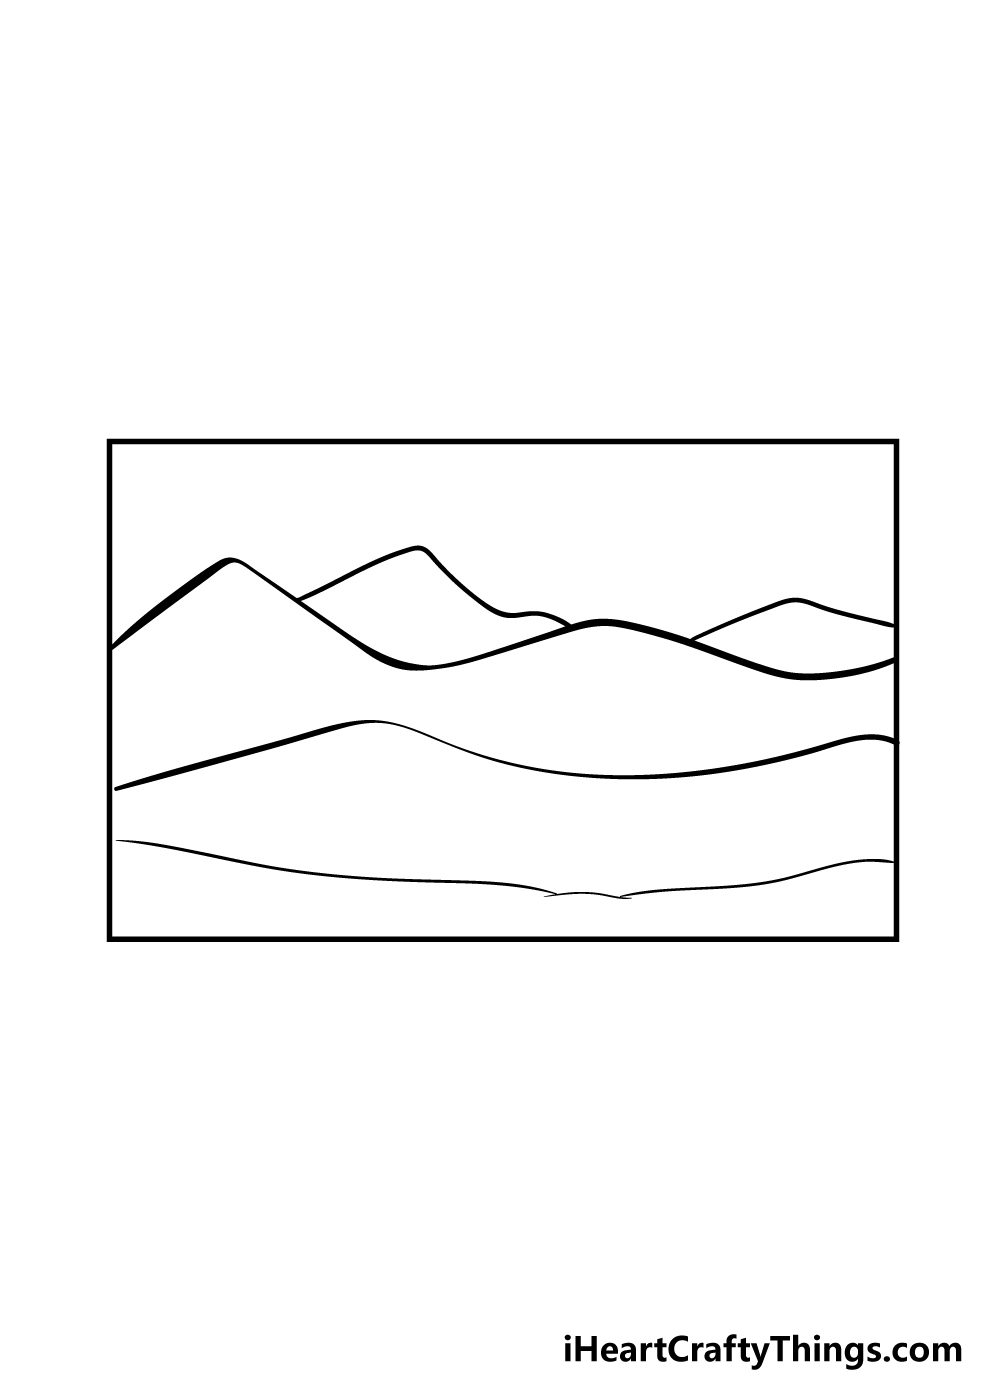 mountain drawing step 4